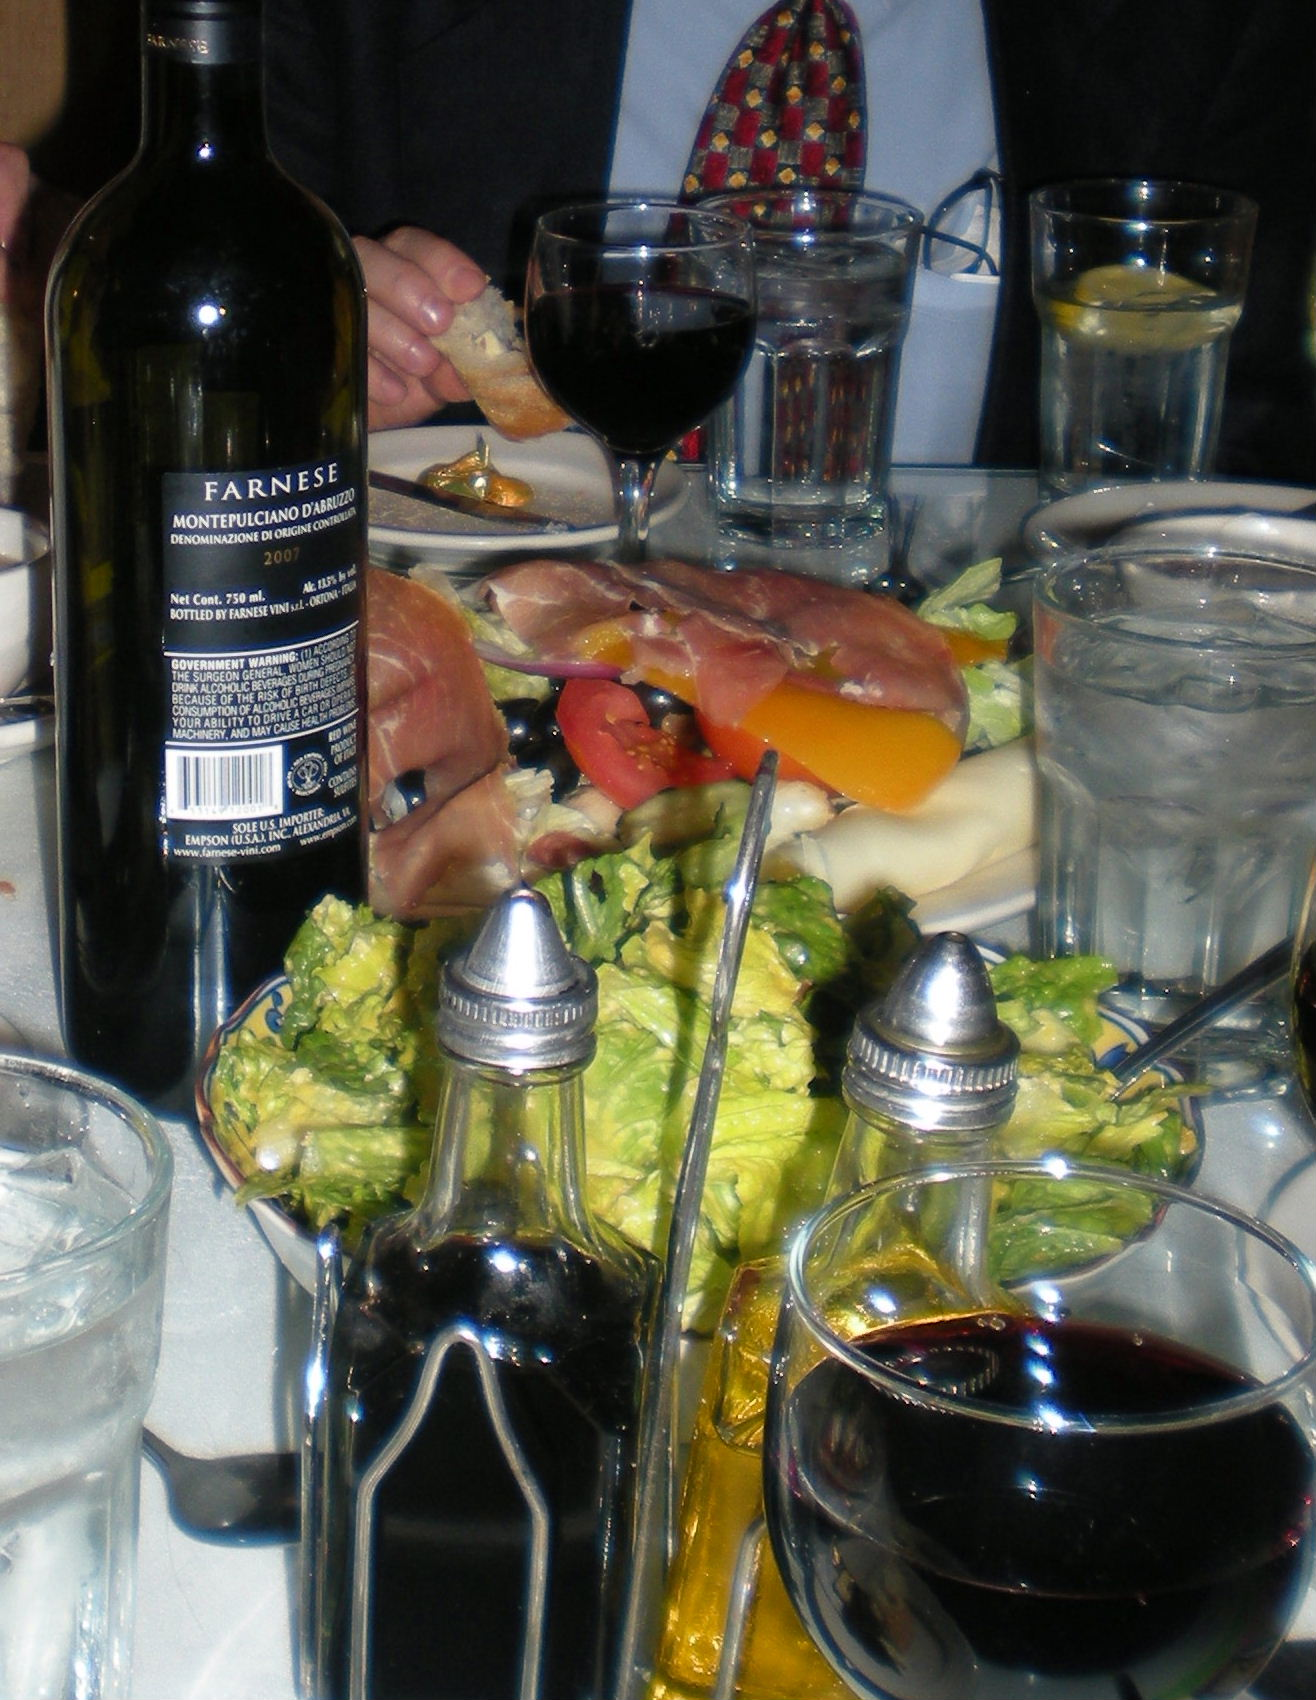 Farnese Montepulicano d'Abruzzo with appetizers